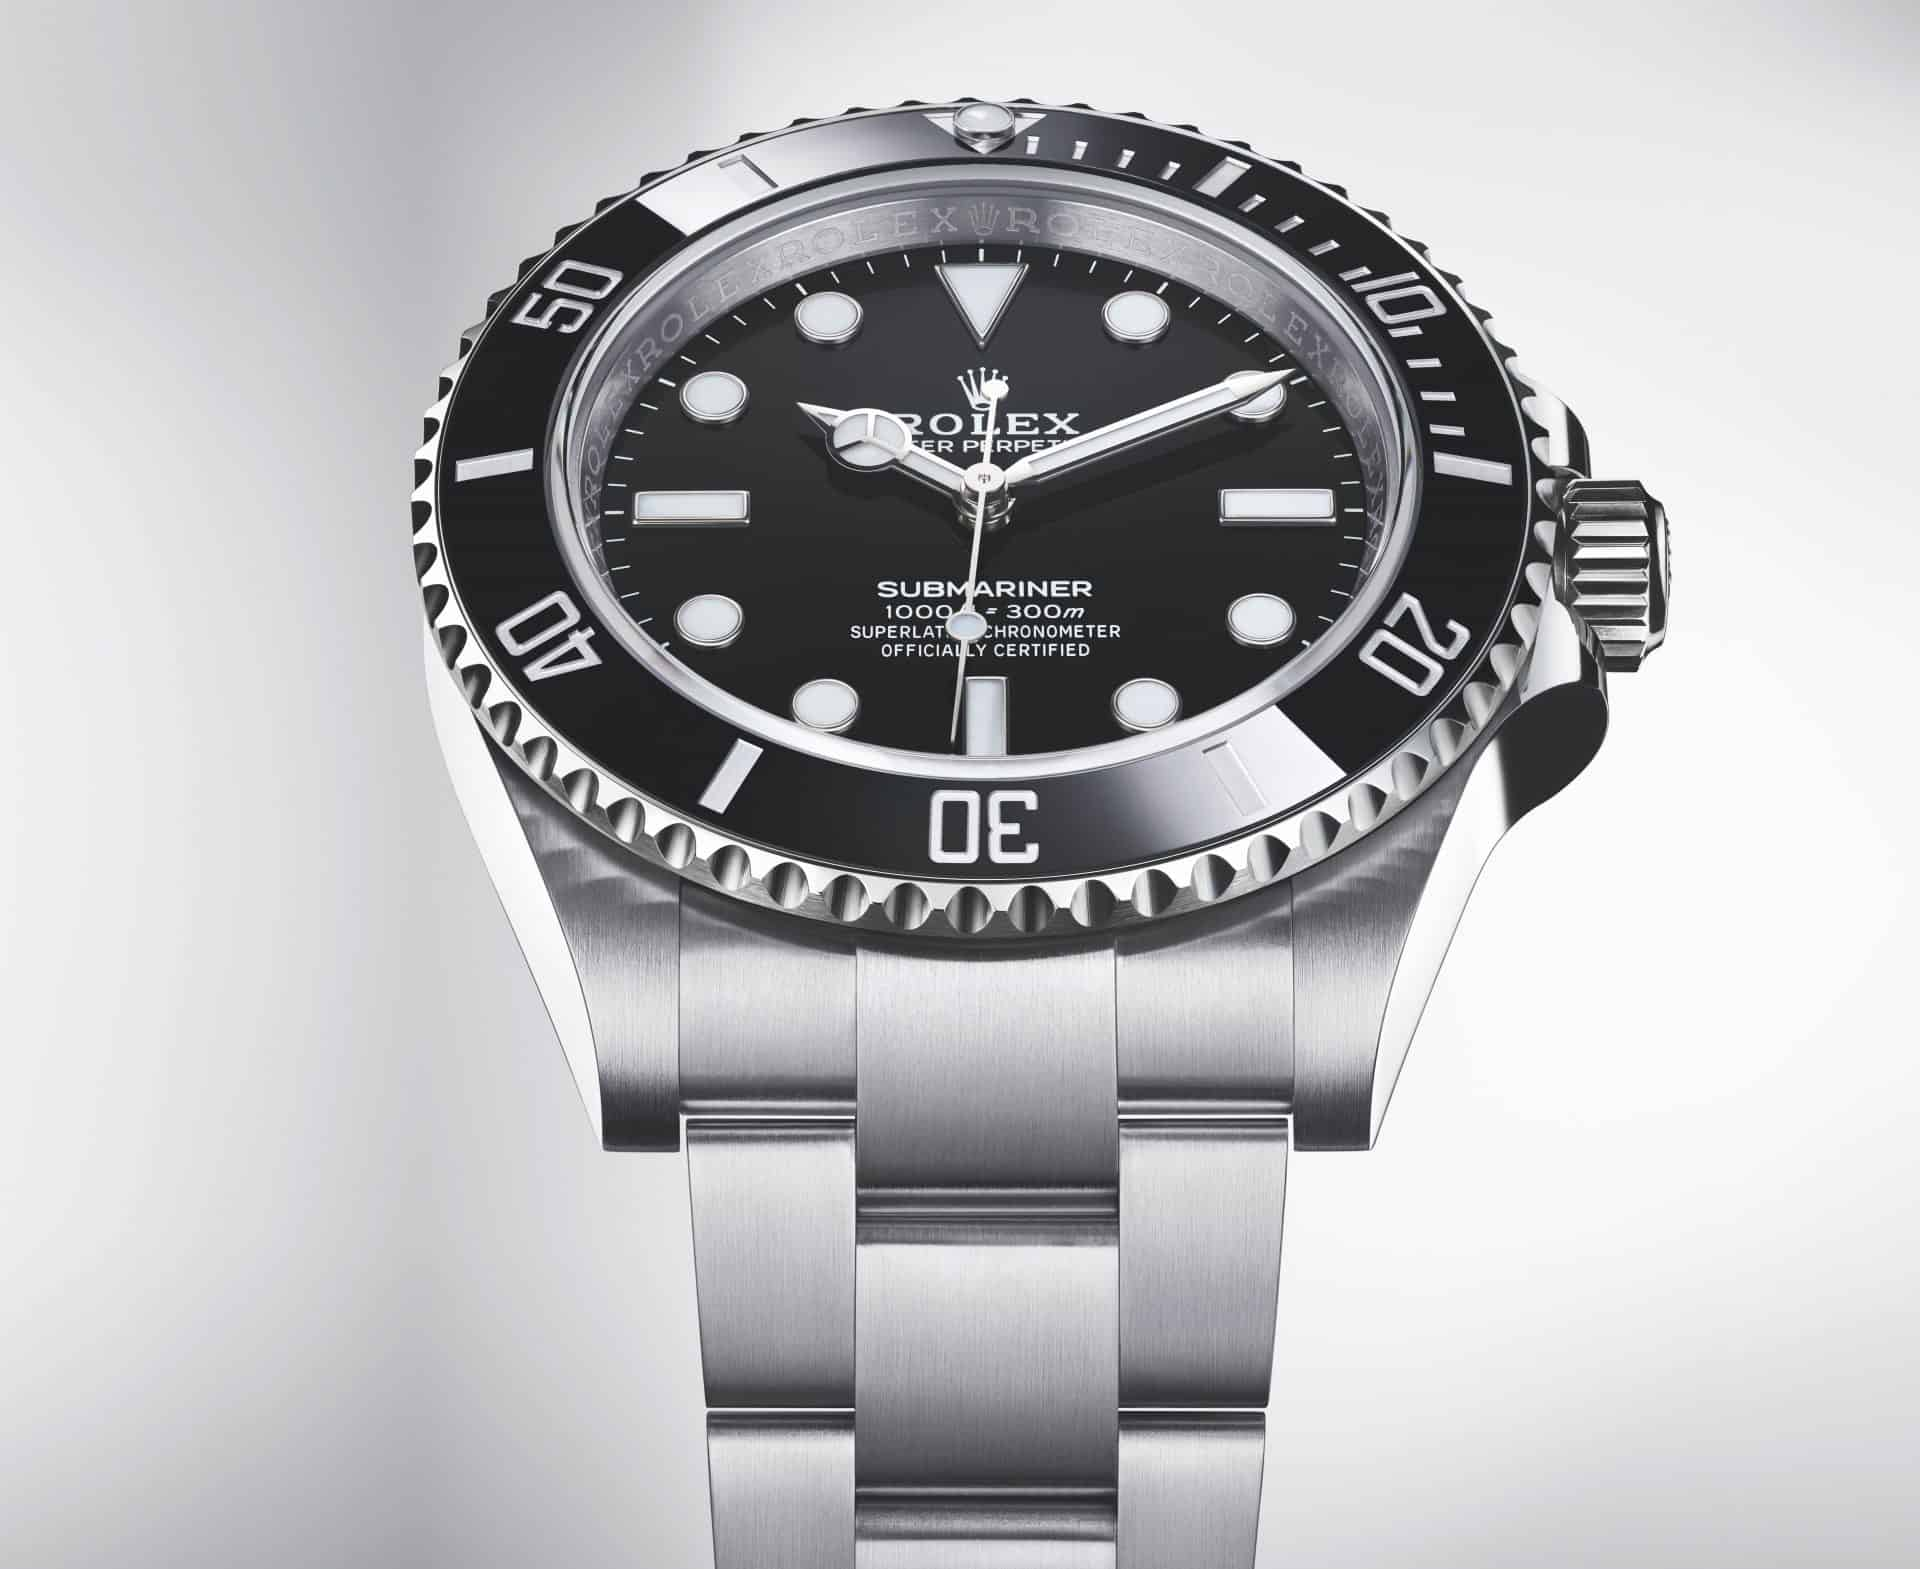 Rolex Oyster Perpetual Submariner Referenz 124060 0001 2001ac 002